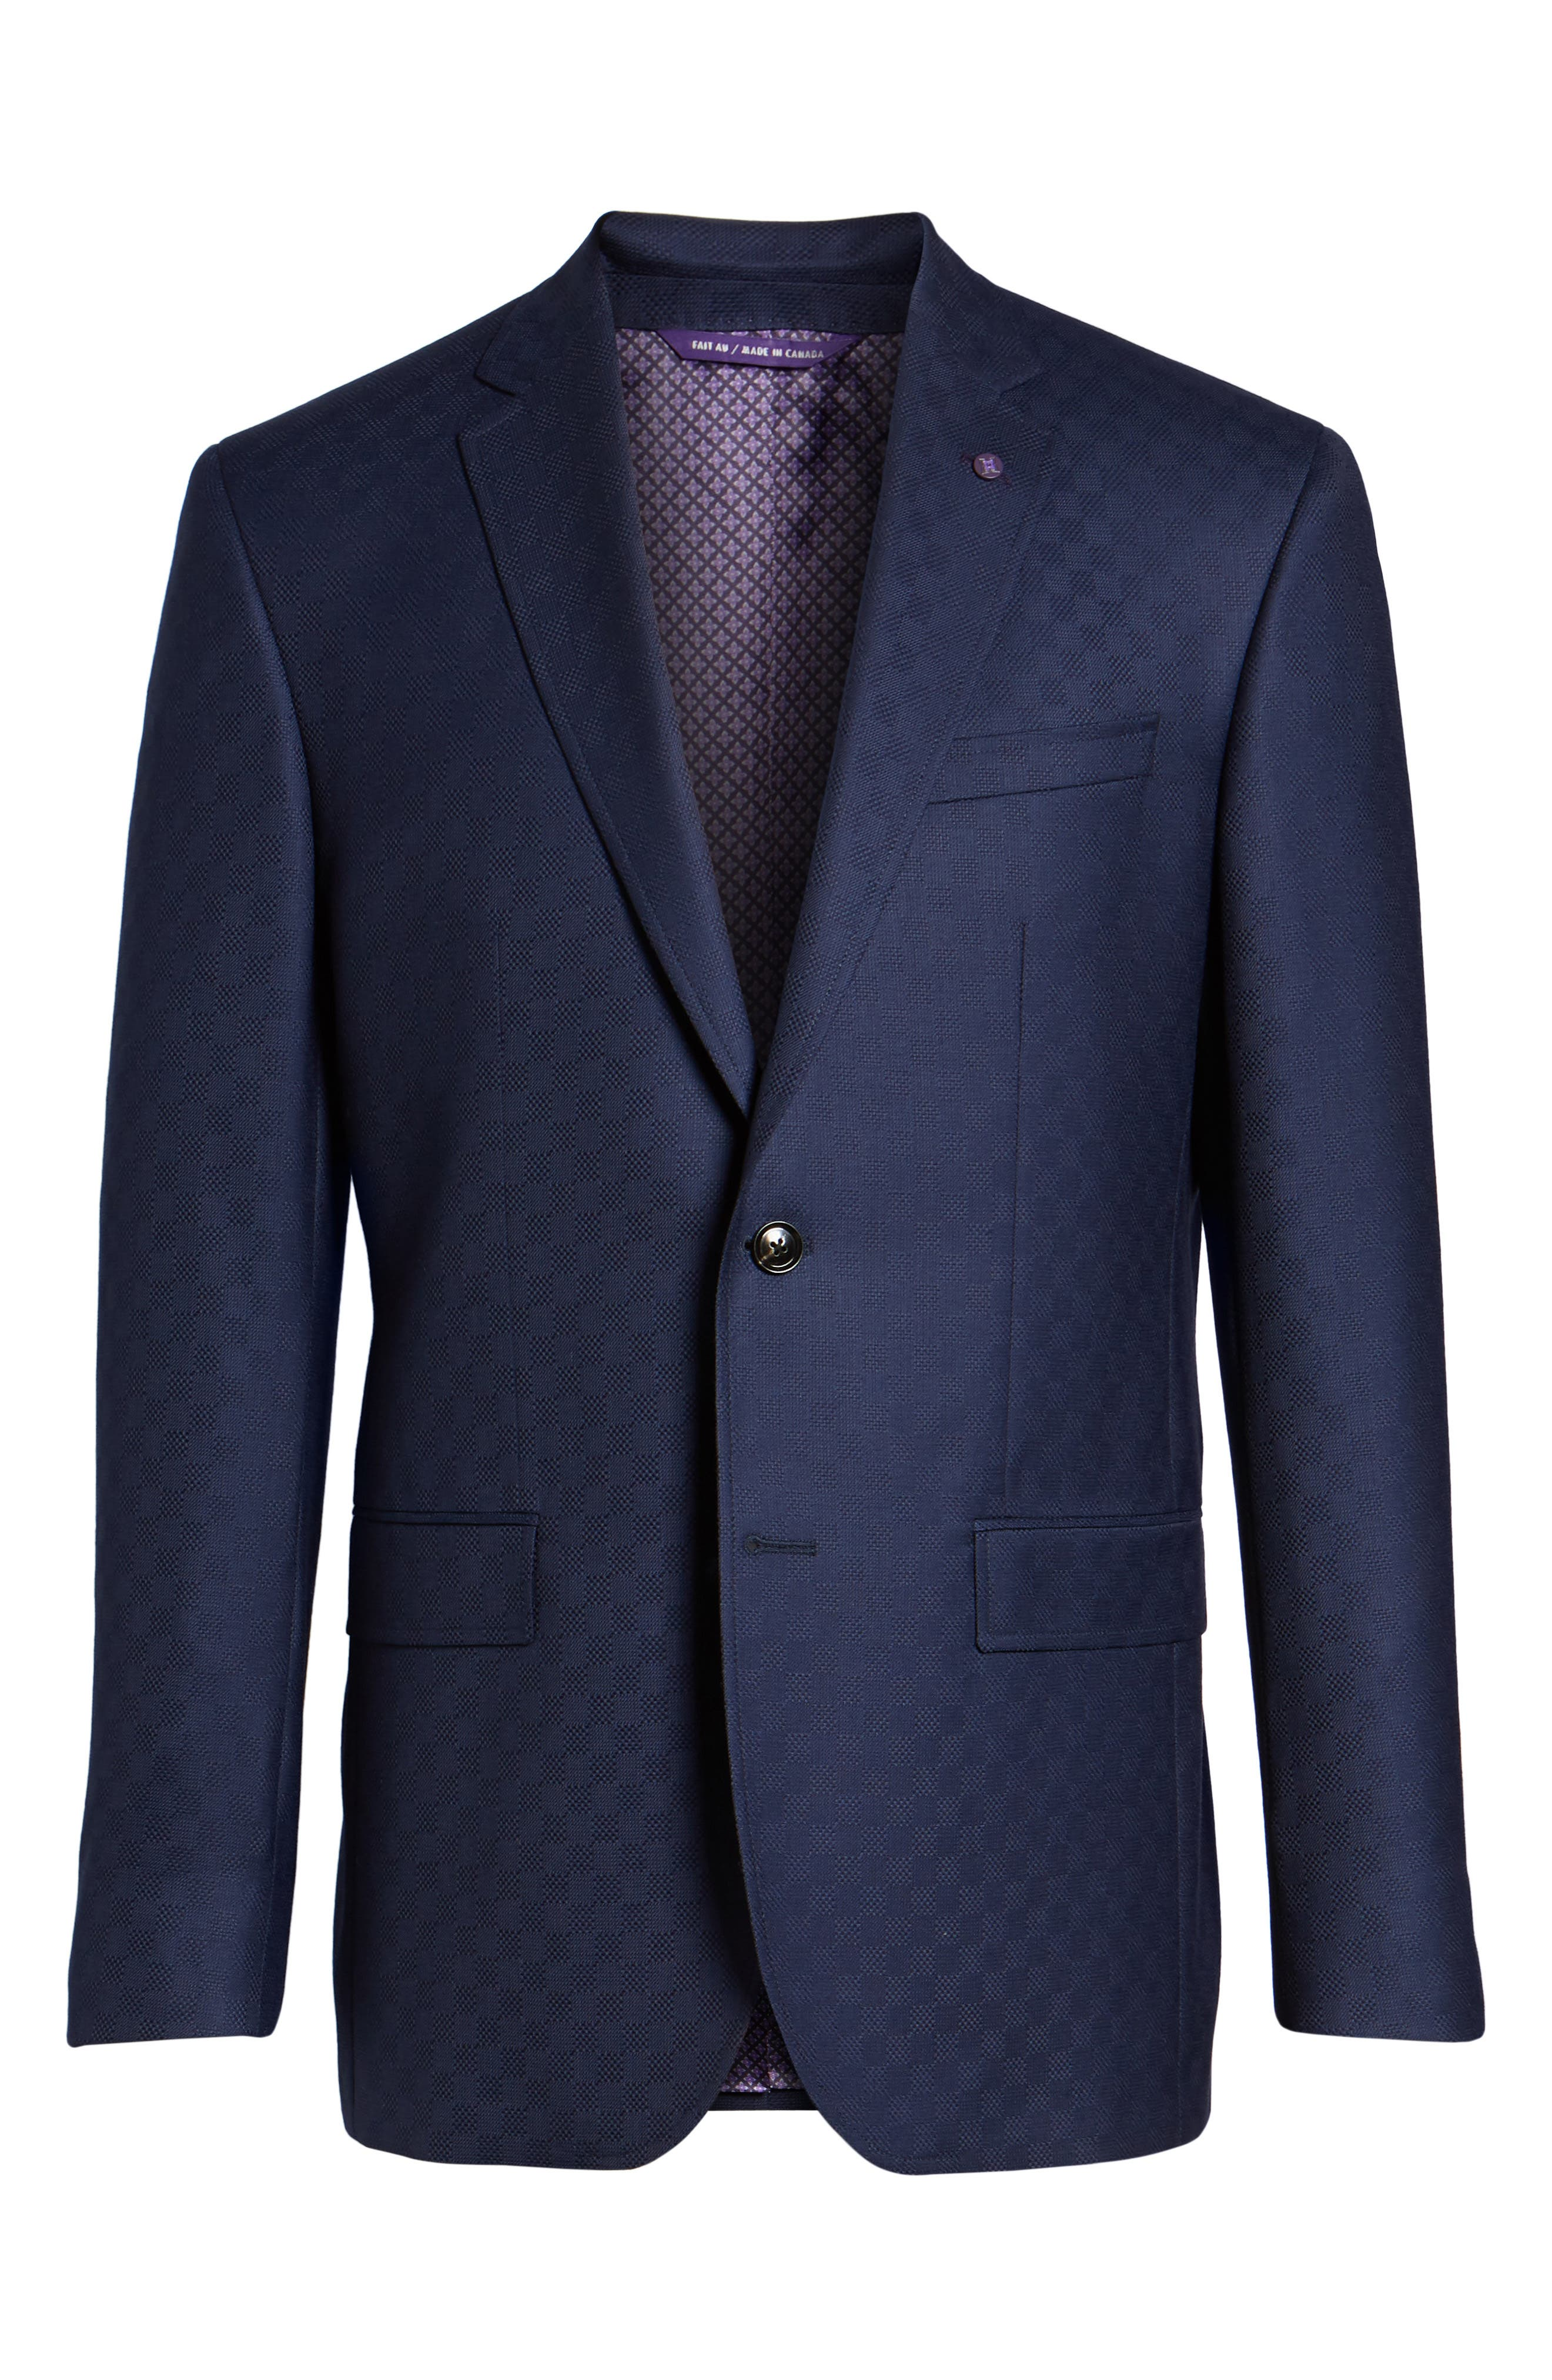 Jay Trim Fit Check Wool Sport Coat,                             Alternate thumbnail 6, color,                             Navy